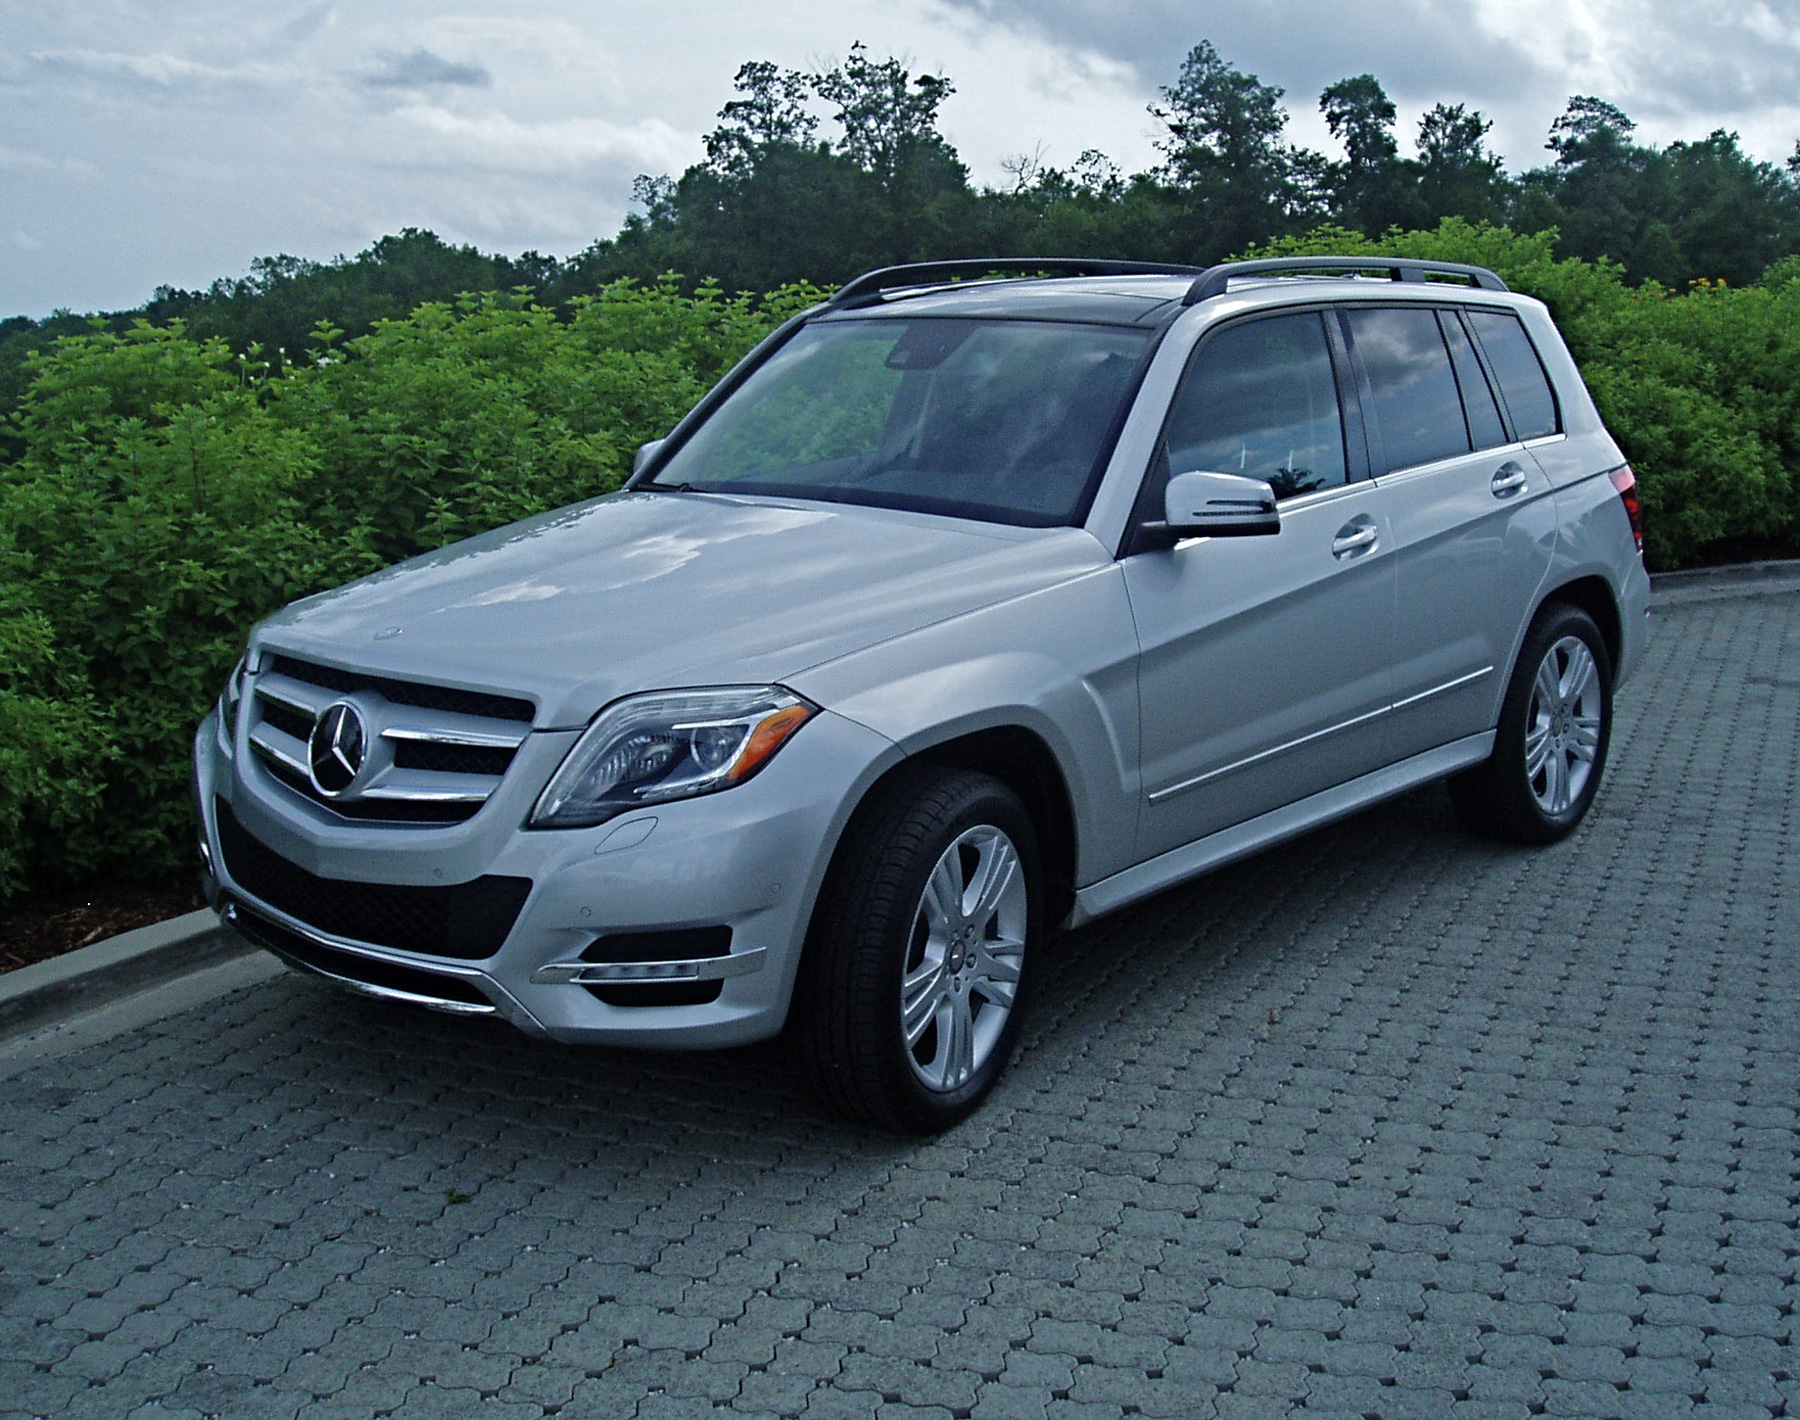 2001 Mercedes Benz Glk Photos Informations Articles 350 Engine Diagram 4